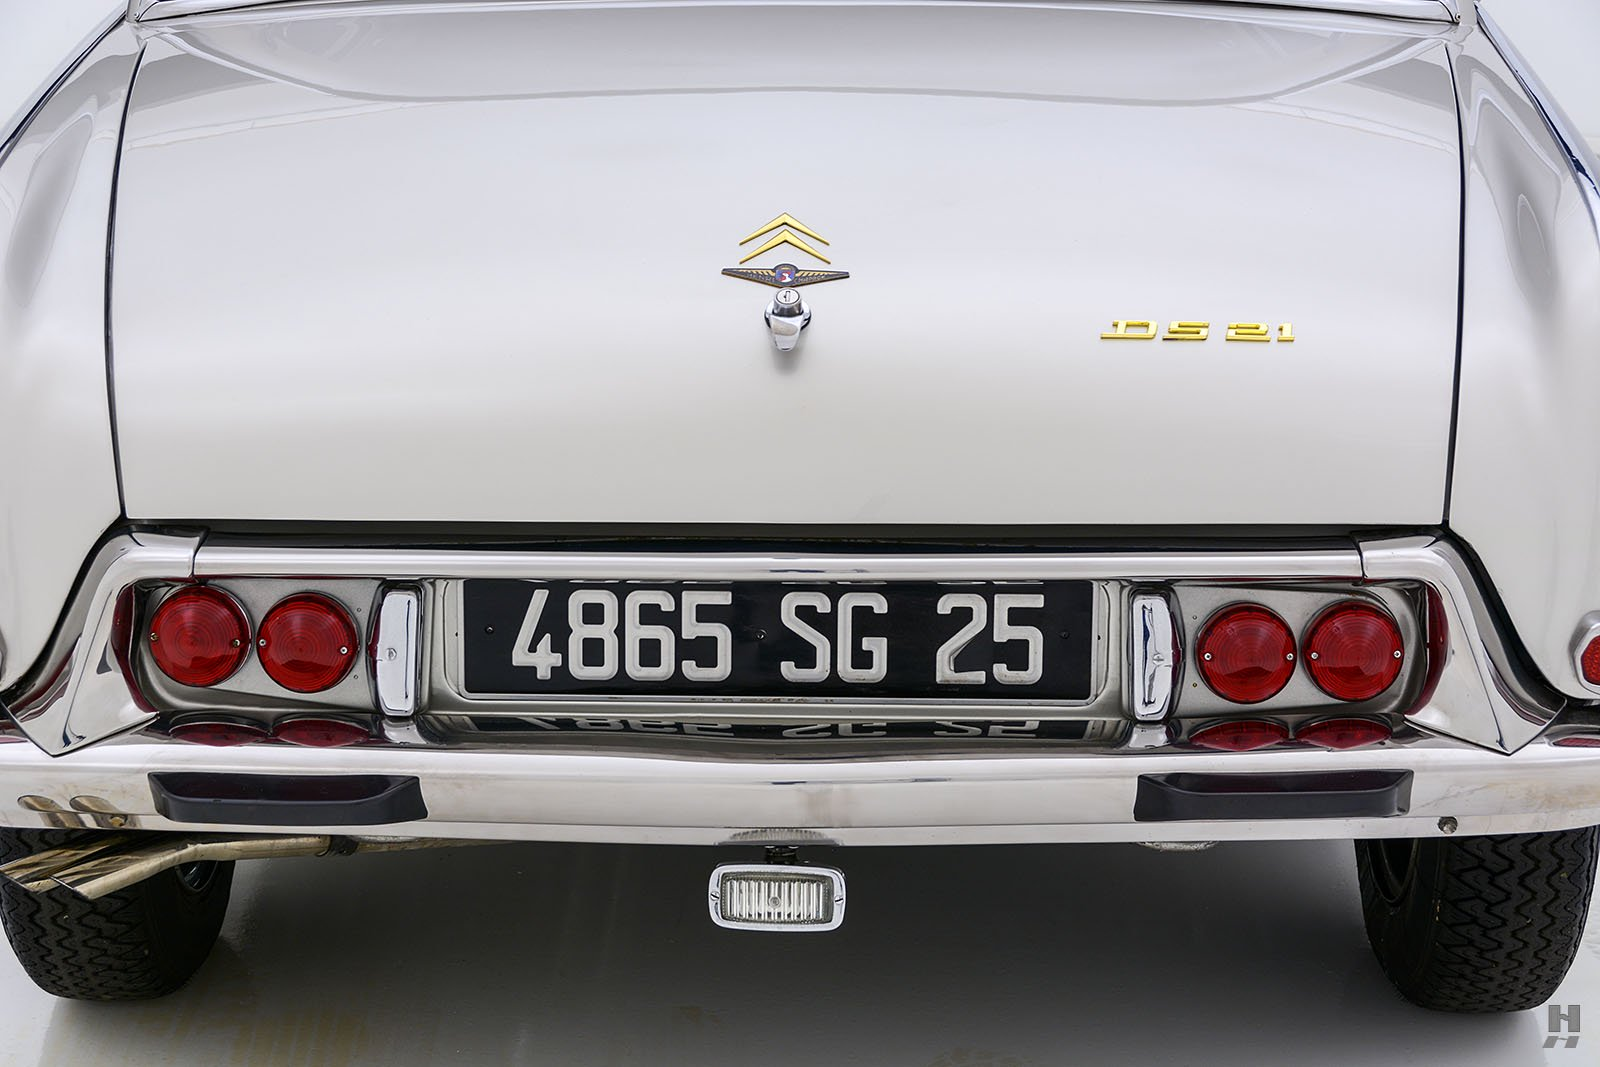 Citroen-DS21-Concorde-coupe-for-sale-28